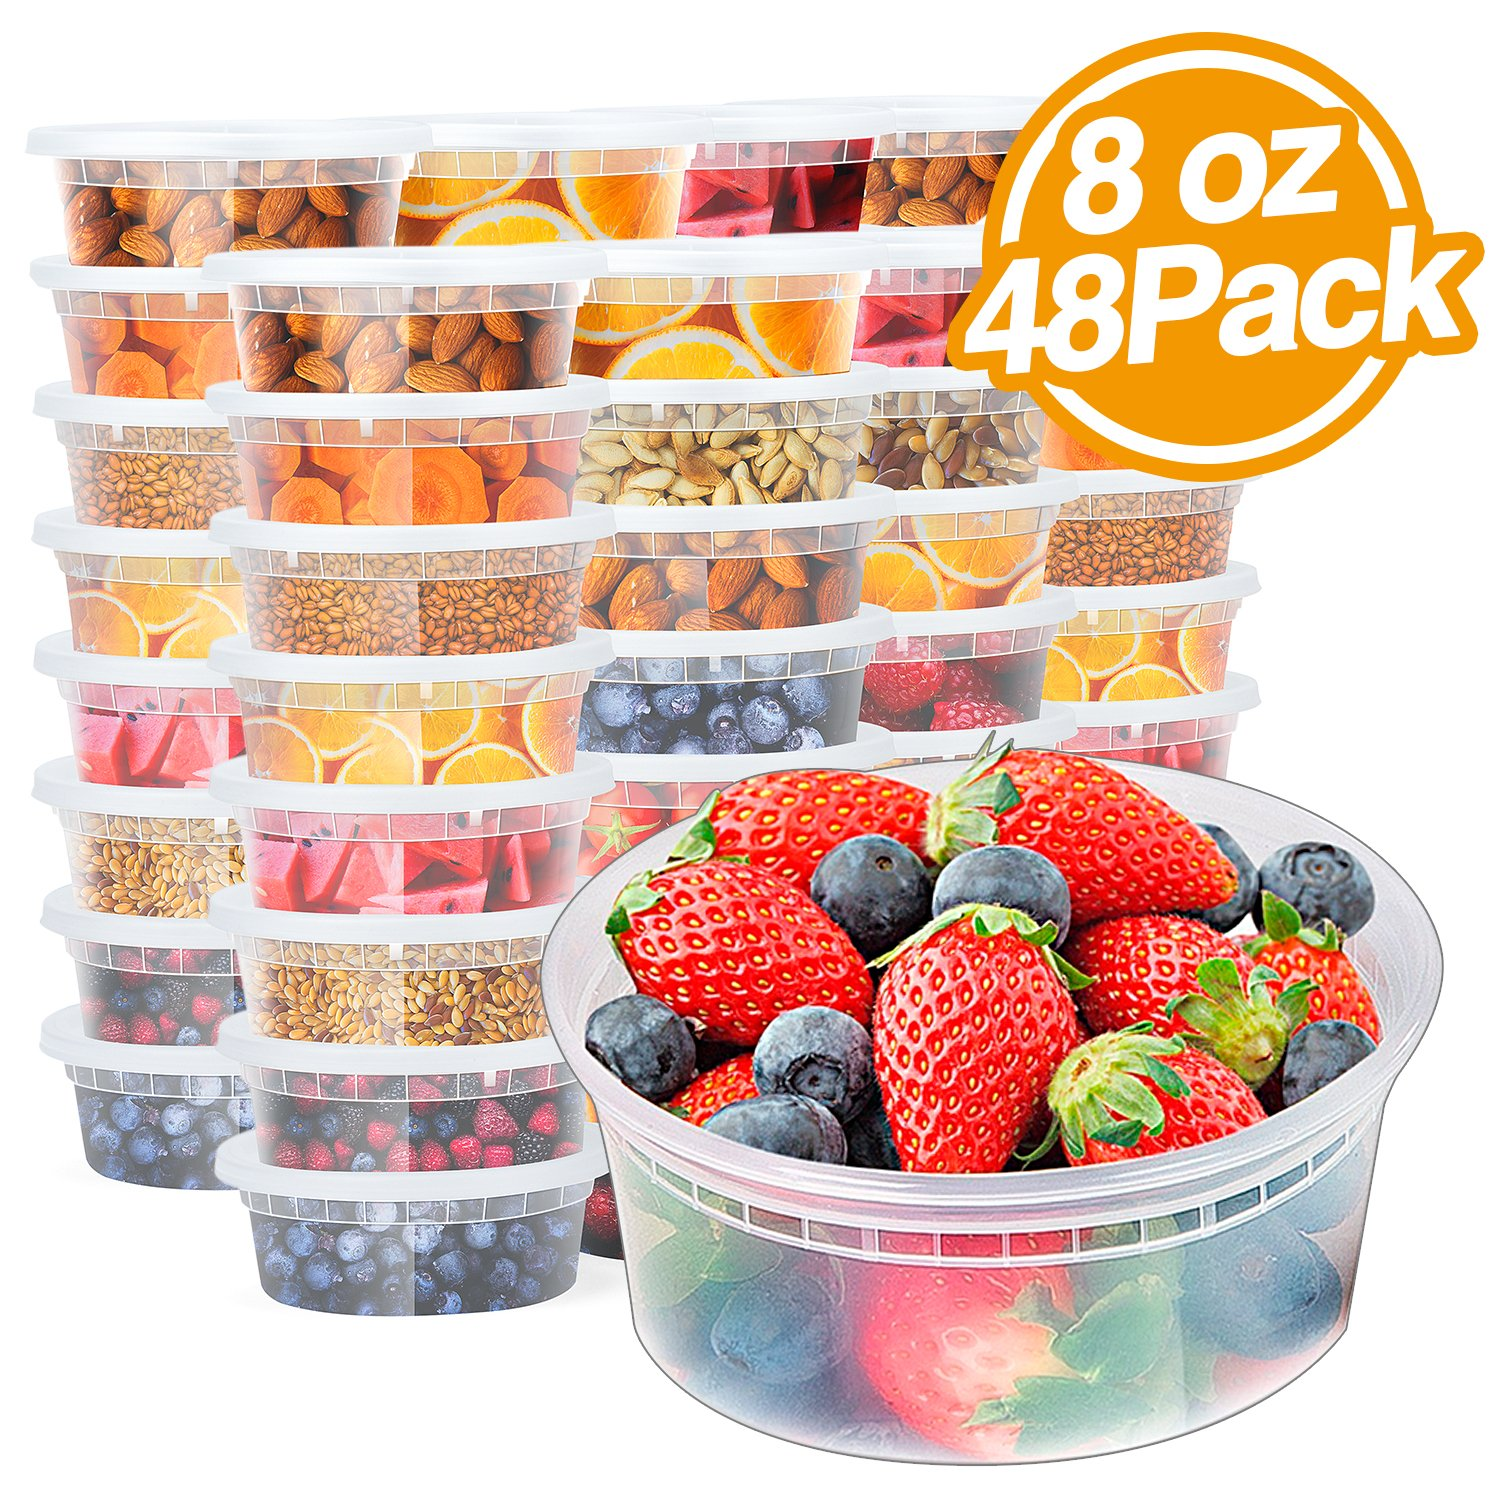 Glotoch 48pack 8oz Deli Food Storge containers with lids.Food grade plastic containers BPA FREE leakproof Restaurant Deli Cups,Foodsavers,Bento Lunch Box, Portion Control,and Meal Prep Containers